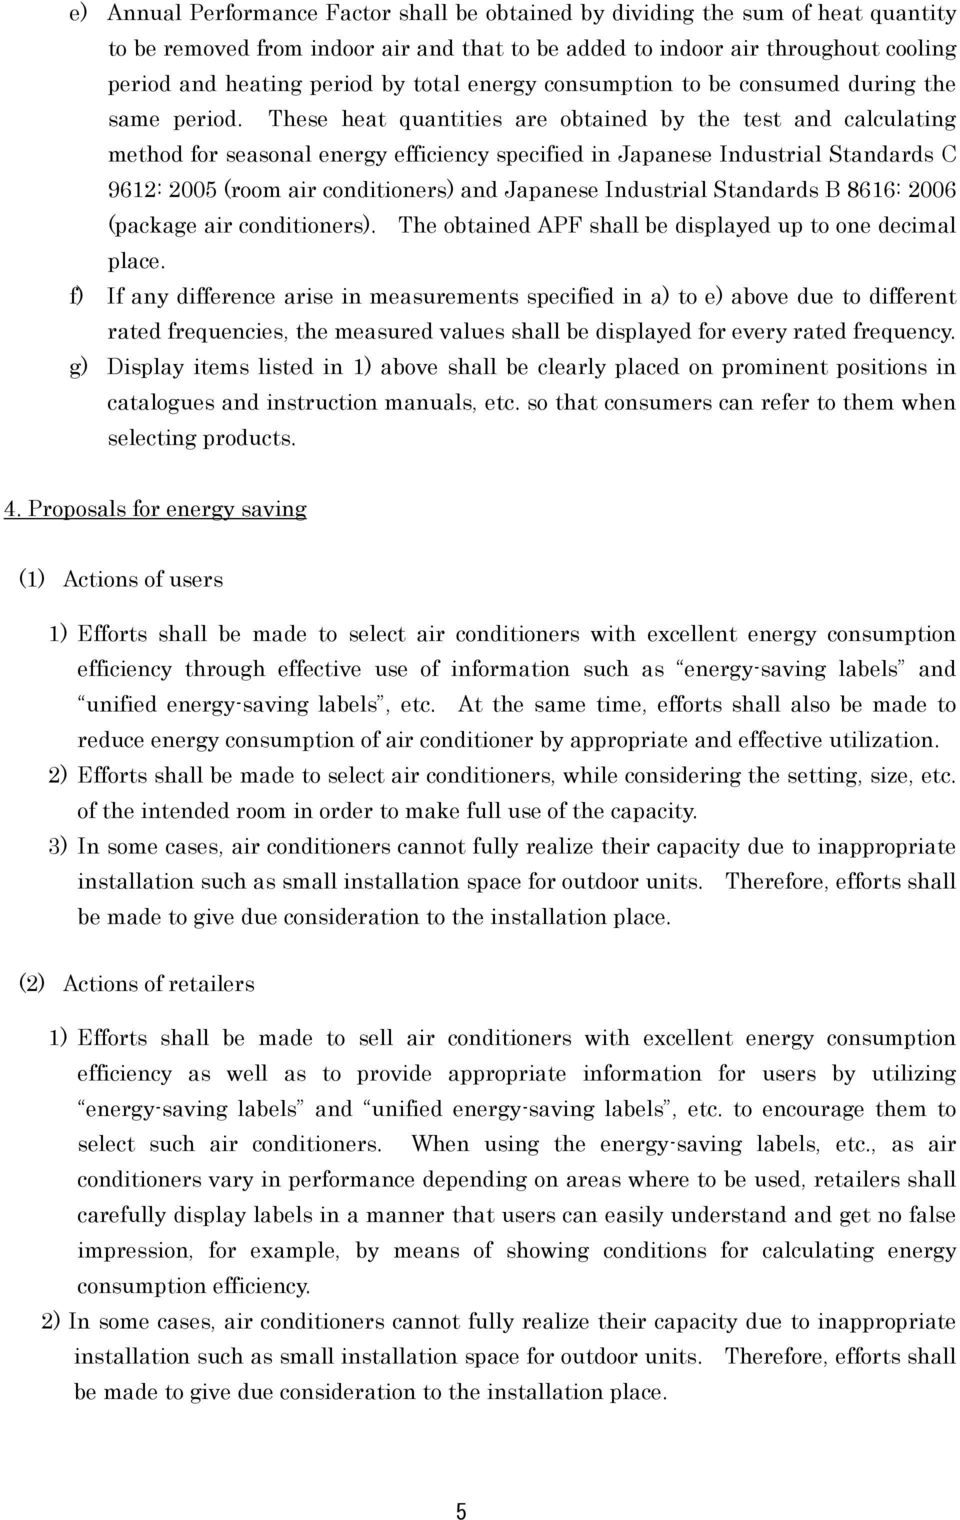 These heat quantities are obtained by the test and calculating method for seasonal energy efficiency specified in Japanese Industrial Standards C 9612: 2005 (room air conditioners) and Japanese